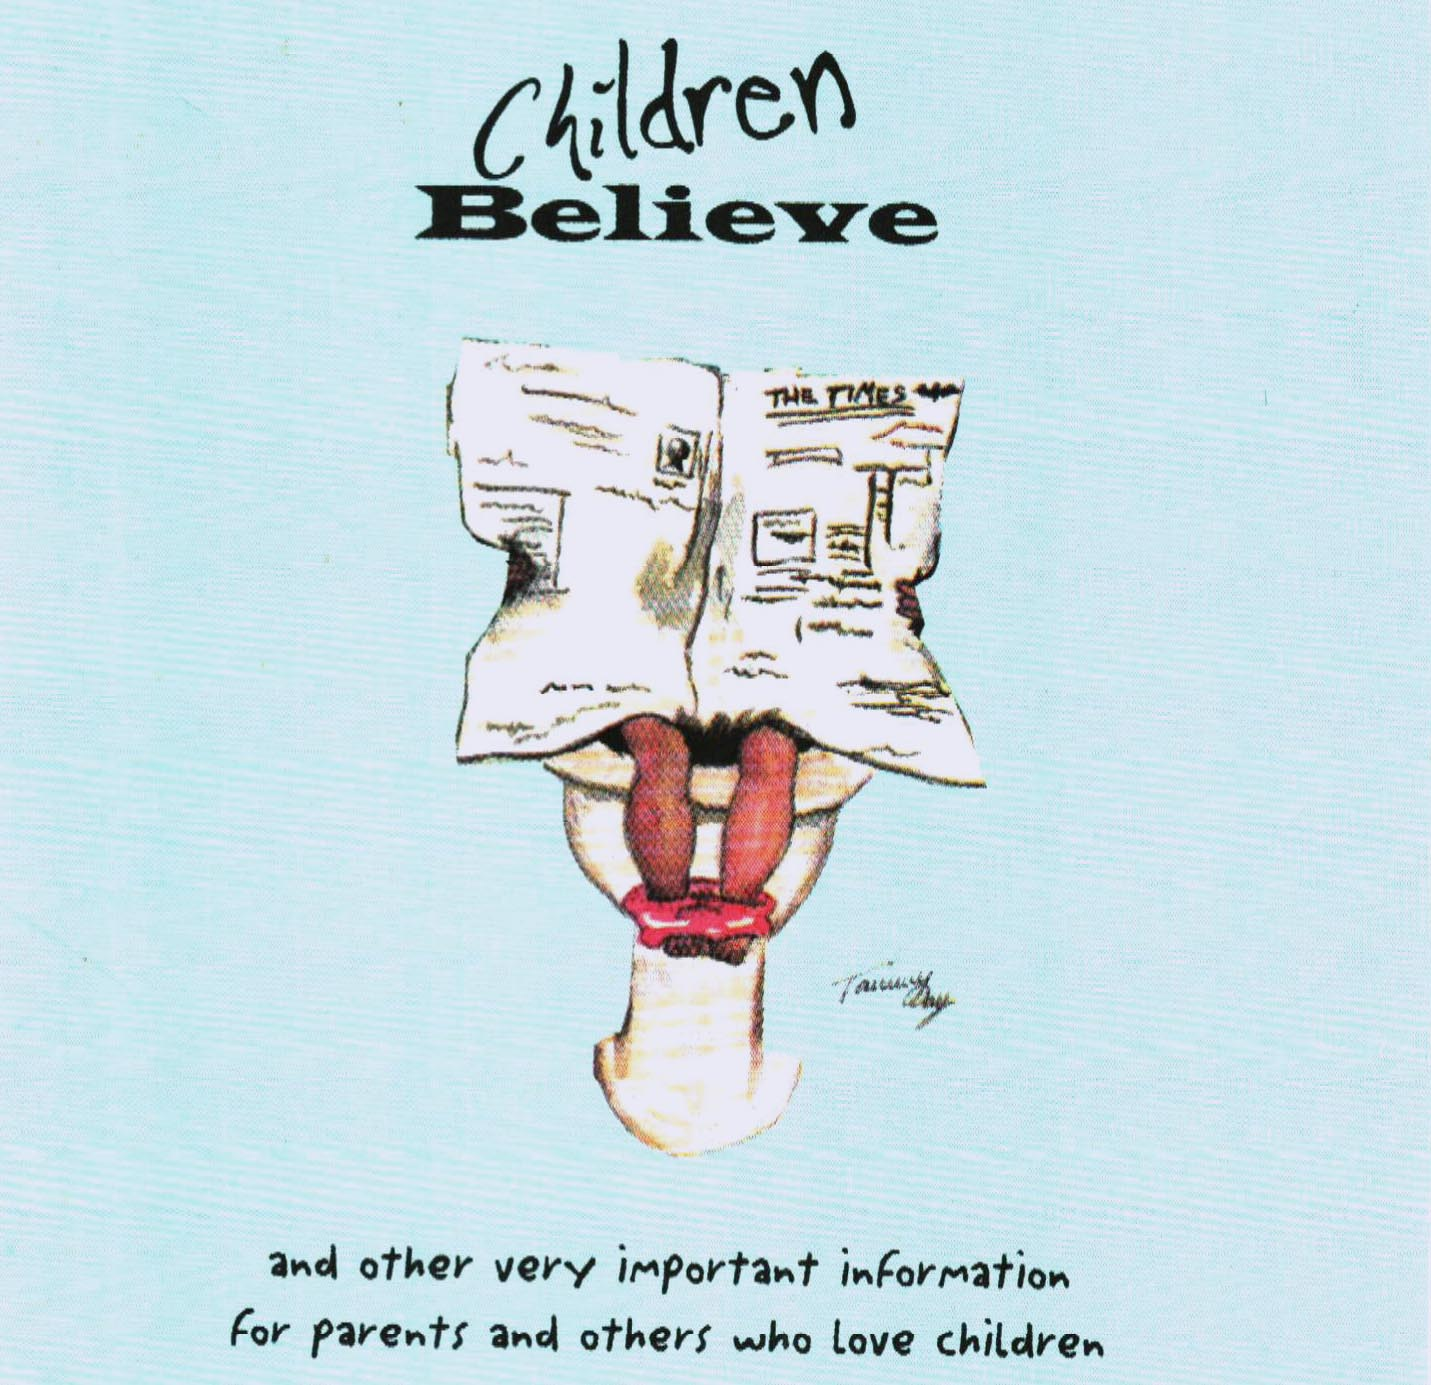 1996 Bookalog Children Believe